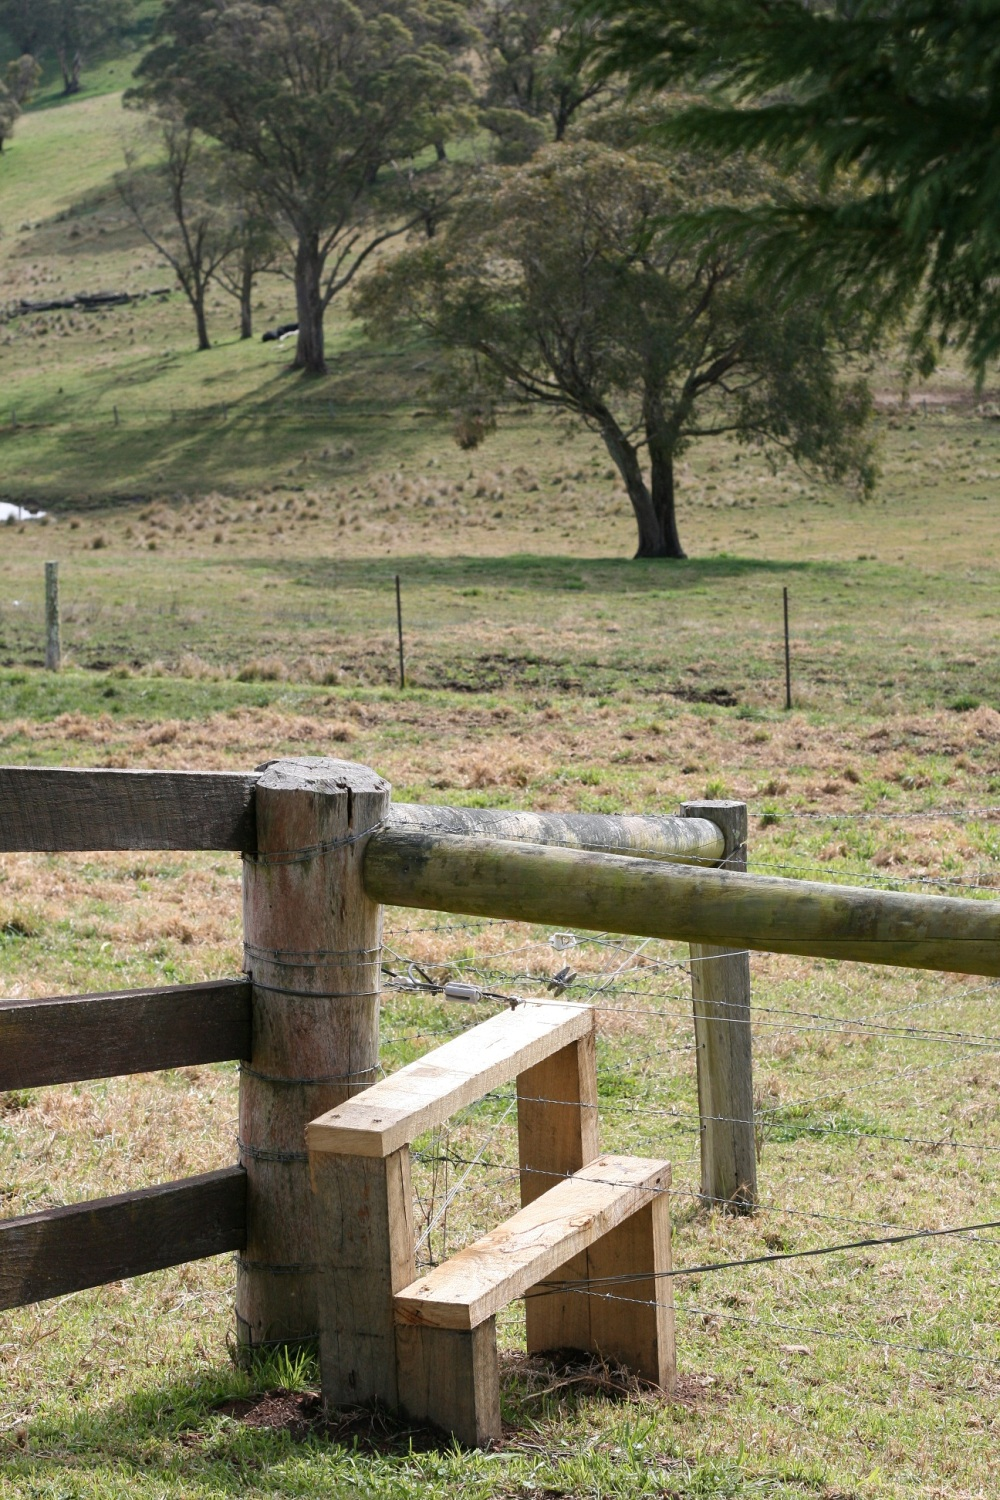 Southern Highlands, August 2011